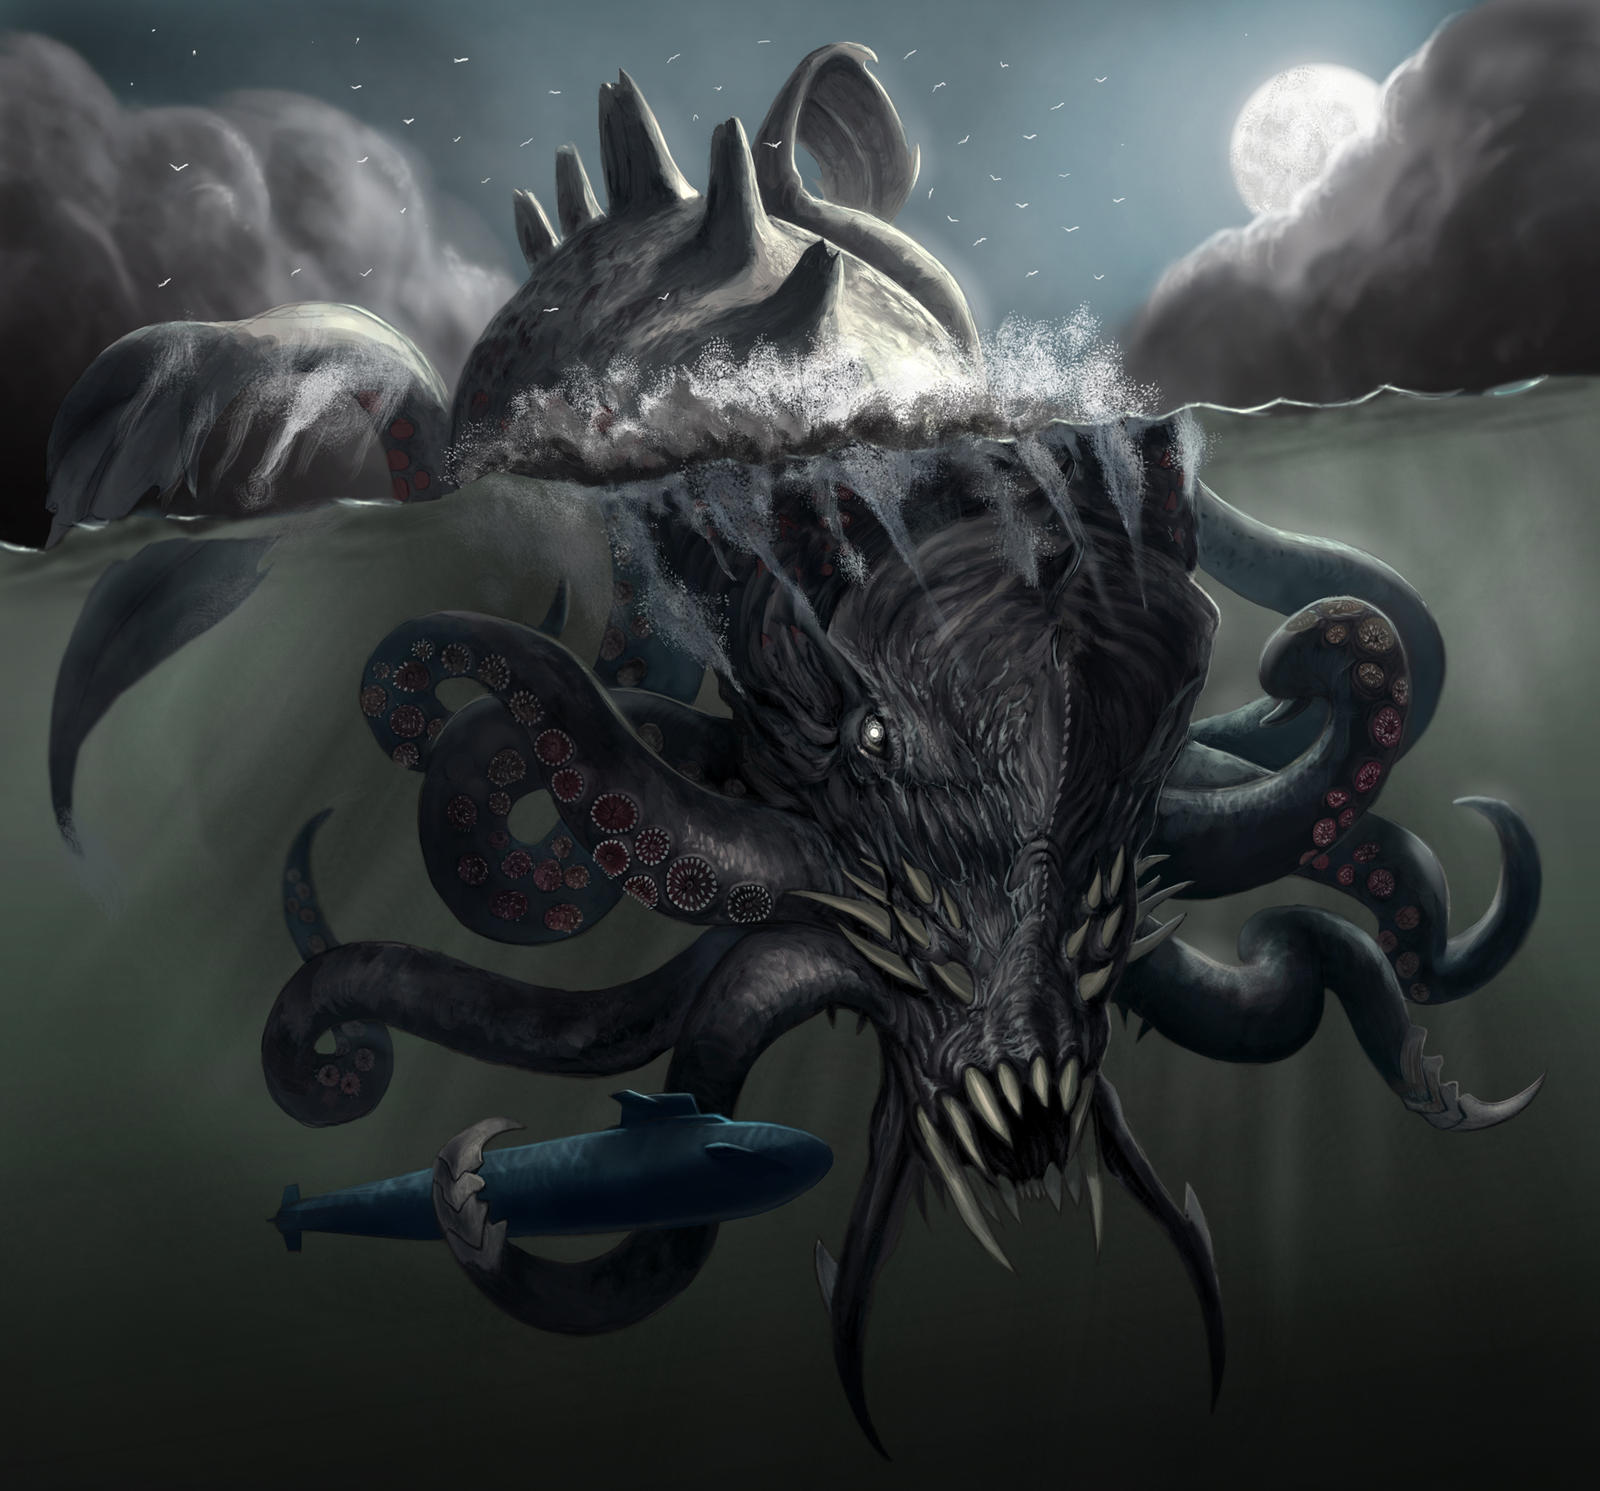 Kraken Final By Davesrightmind On Deviantart